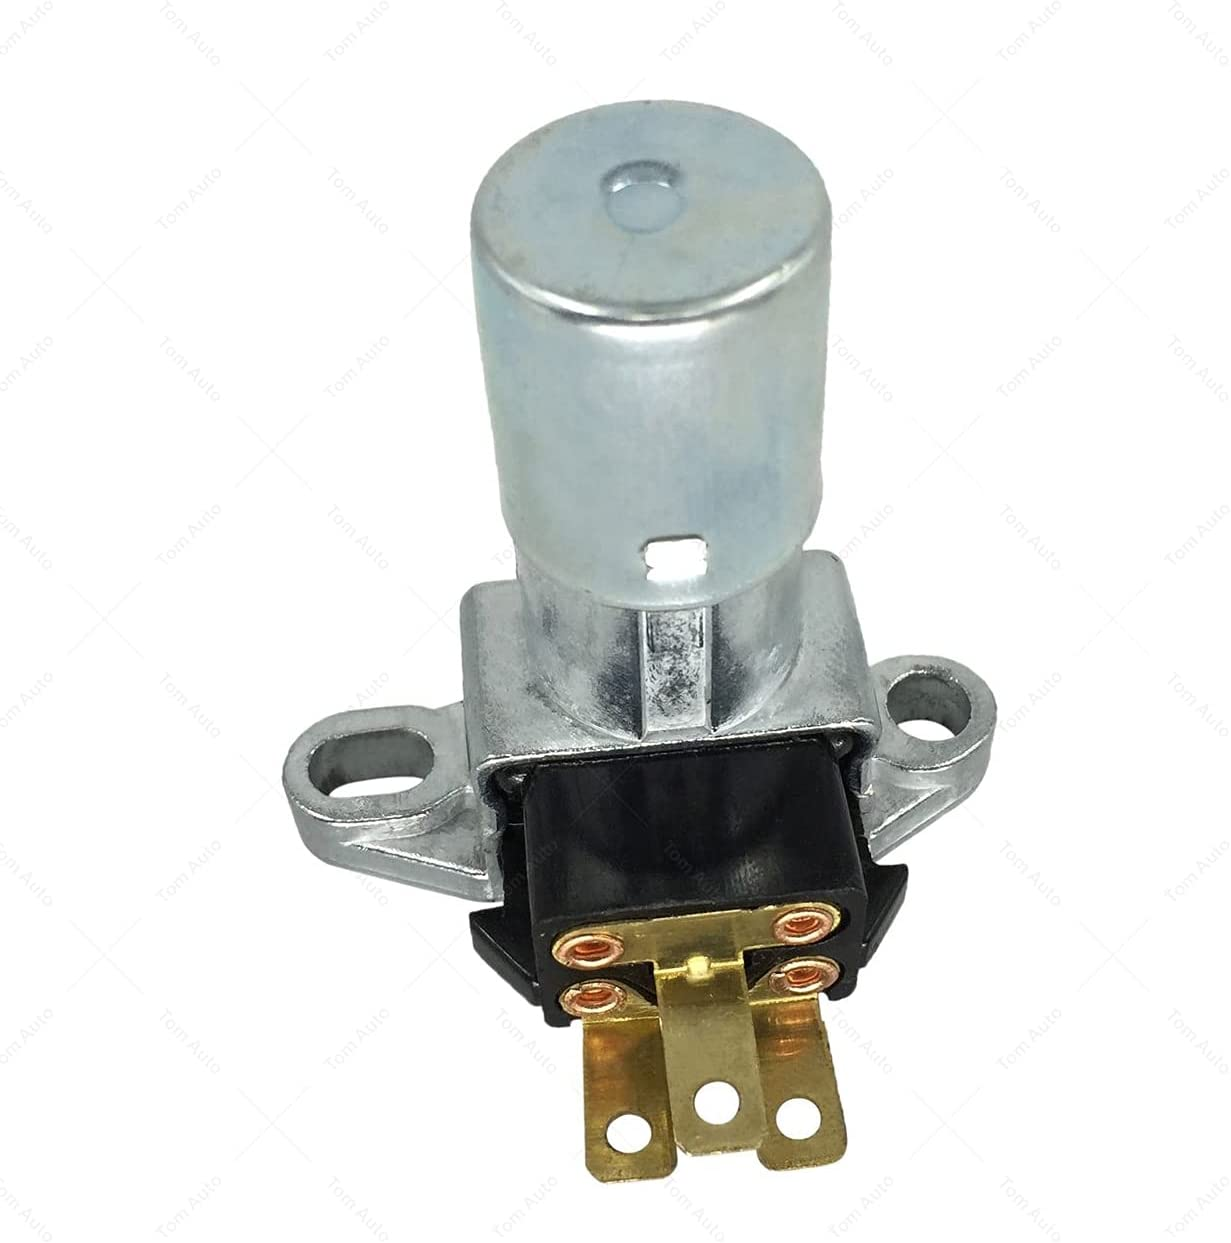 TOM - Headlight Dimmer Switch Fits Buick, Cadillac, Chevrolet, G